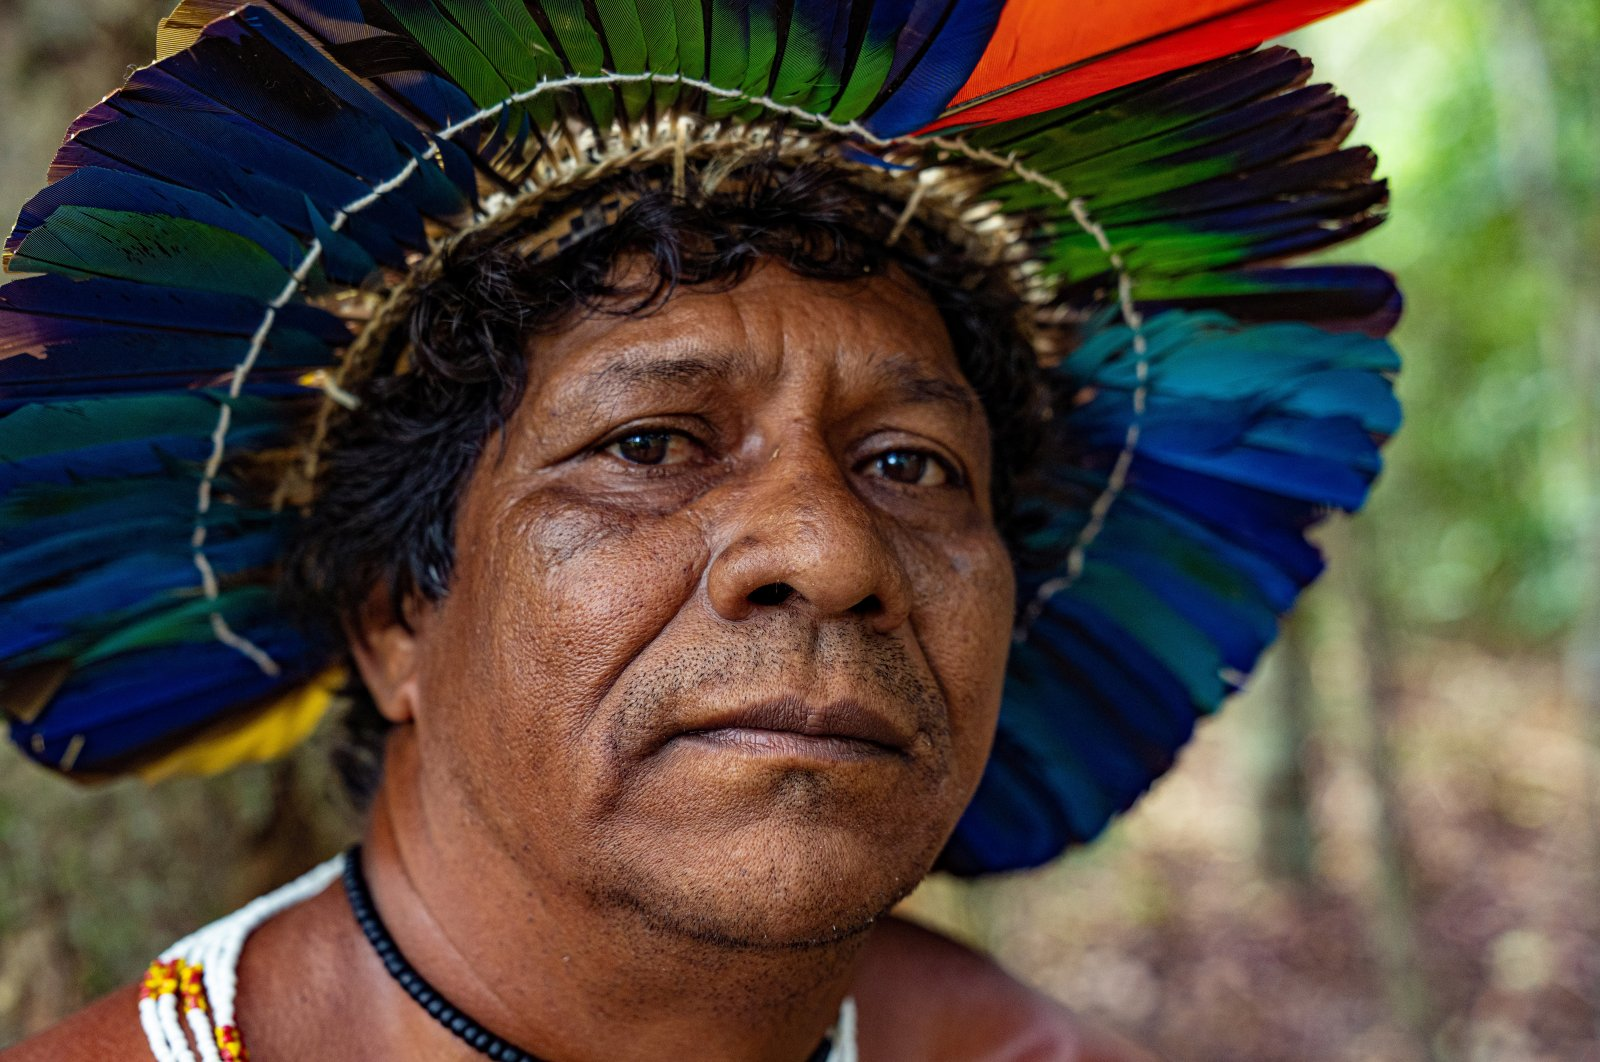 A member of Brazil's indigenous Guarani people looks on in an unknown location, Oct. 2, 2019. (MarkAlbini.com/Instagram @m_albini/Handout via Reuters)